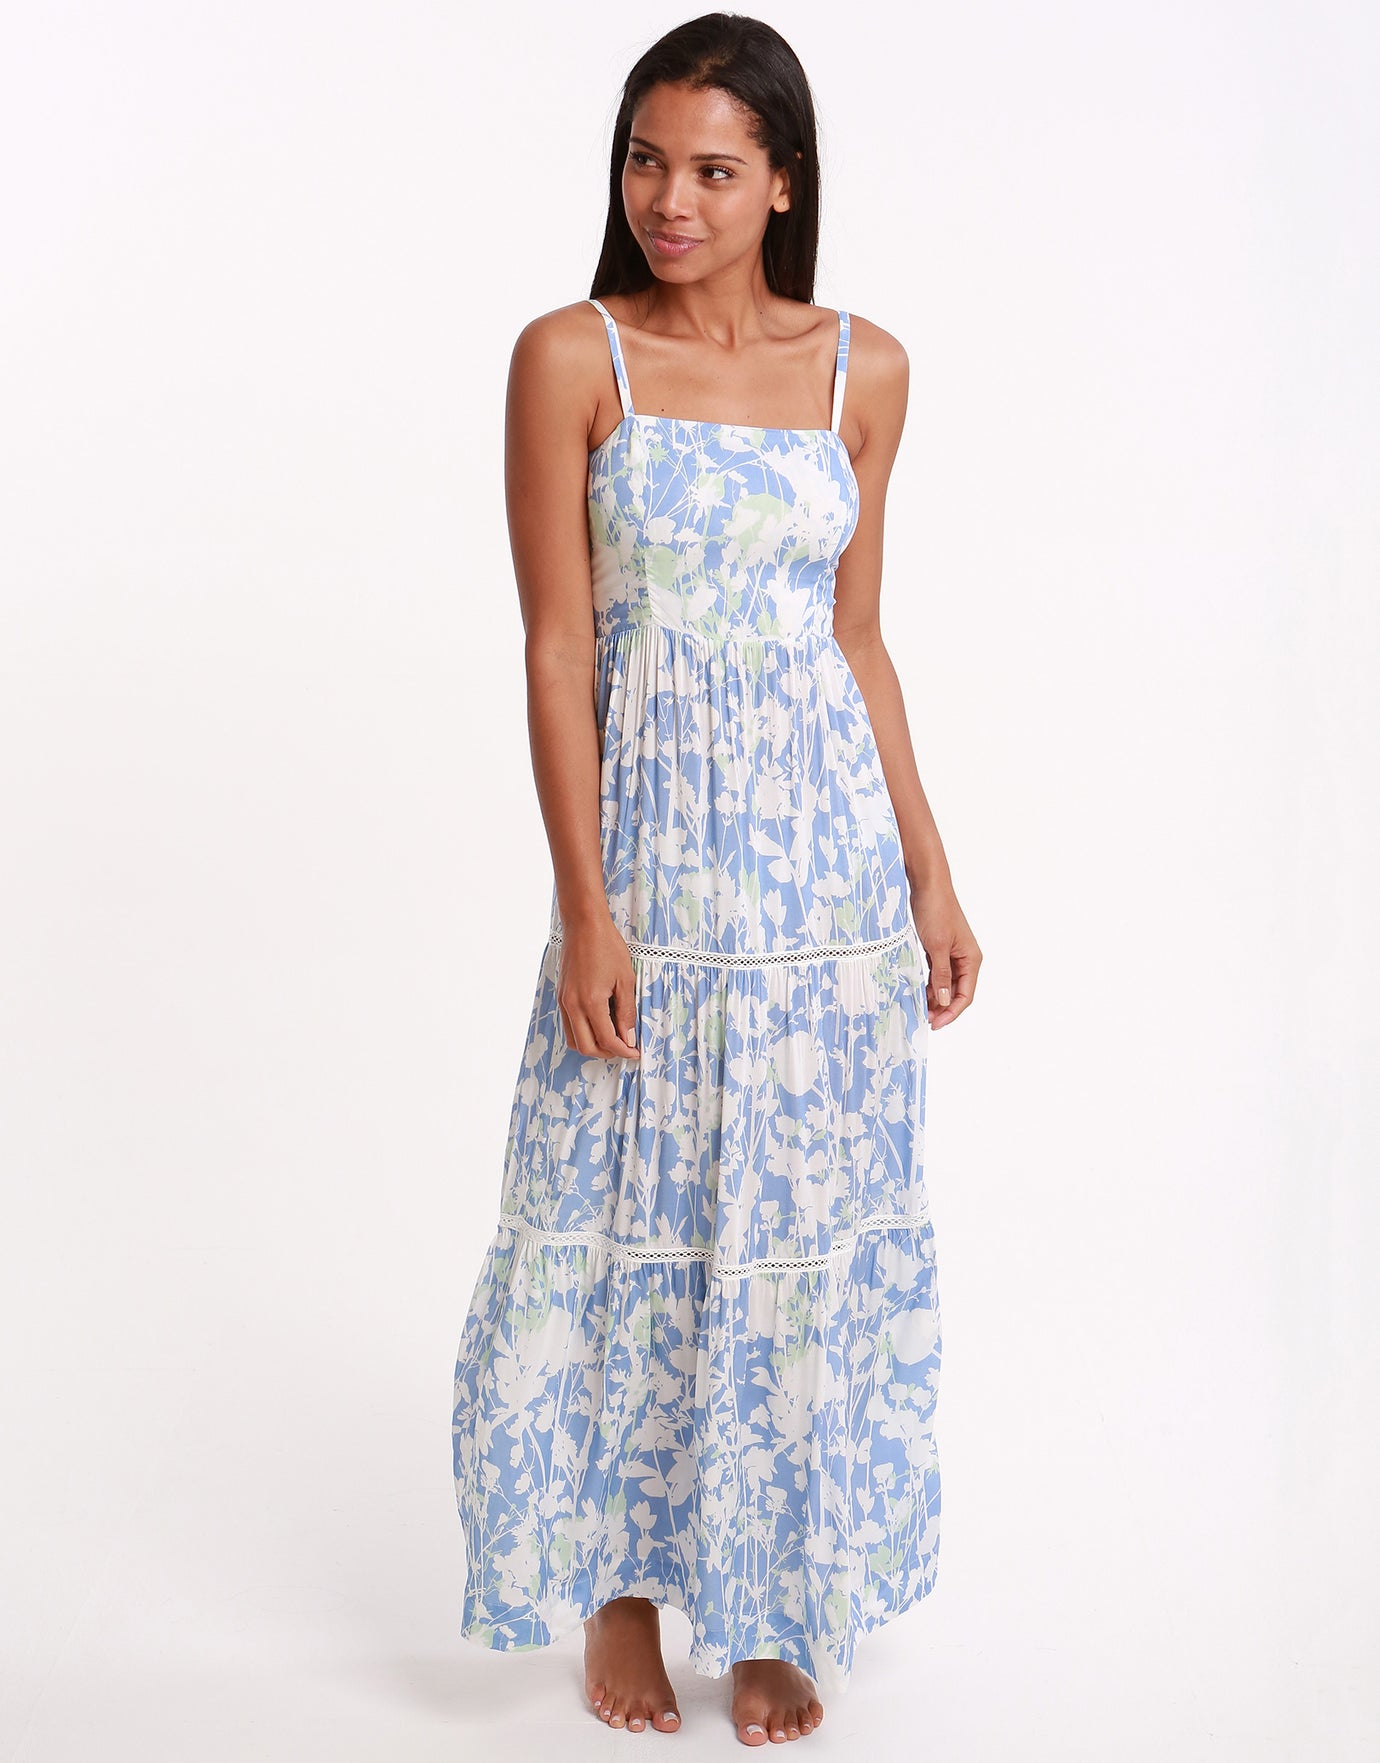 Heidi Klein Langkawi Square Neck Tiered Maxi Dress - Print